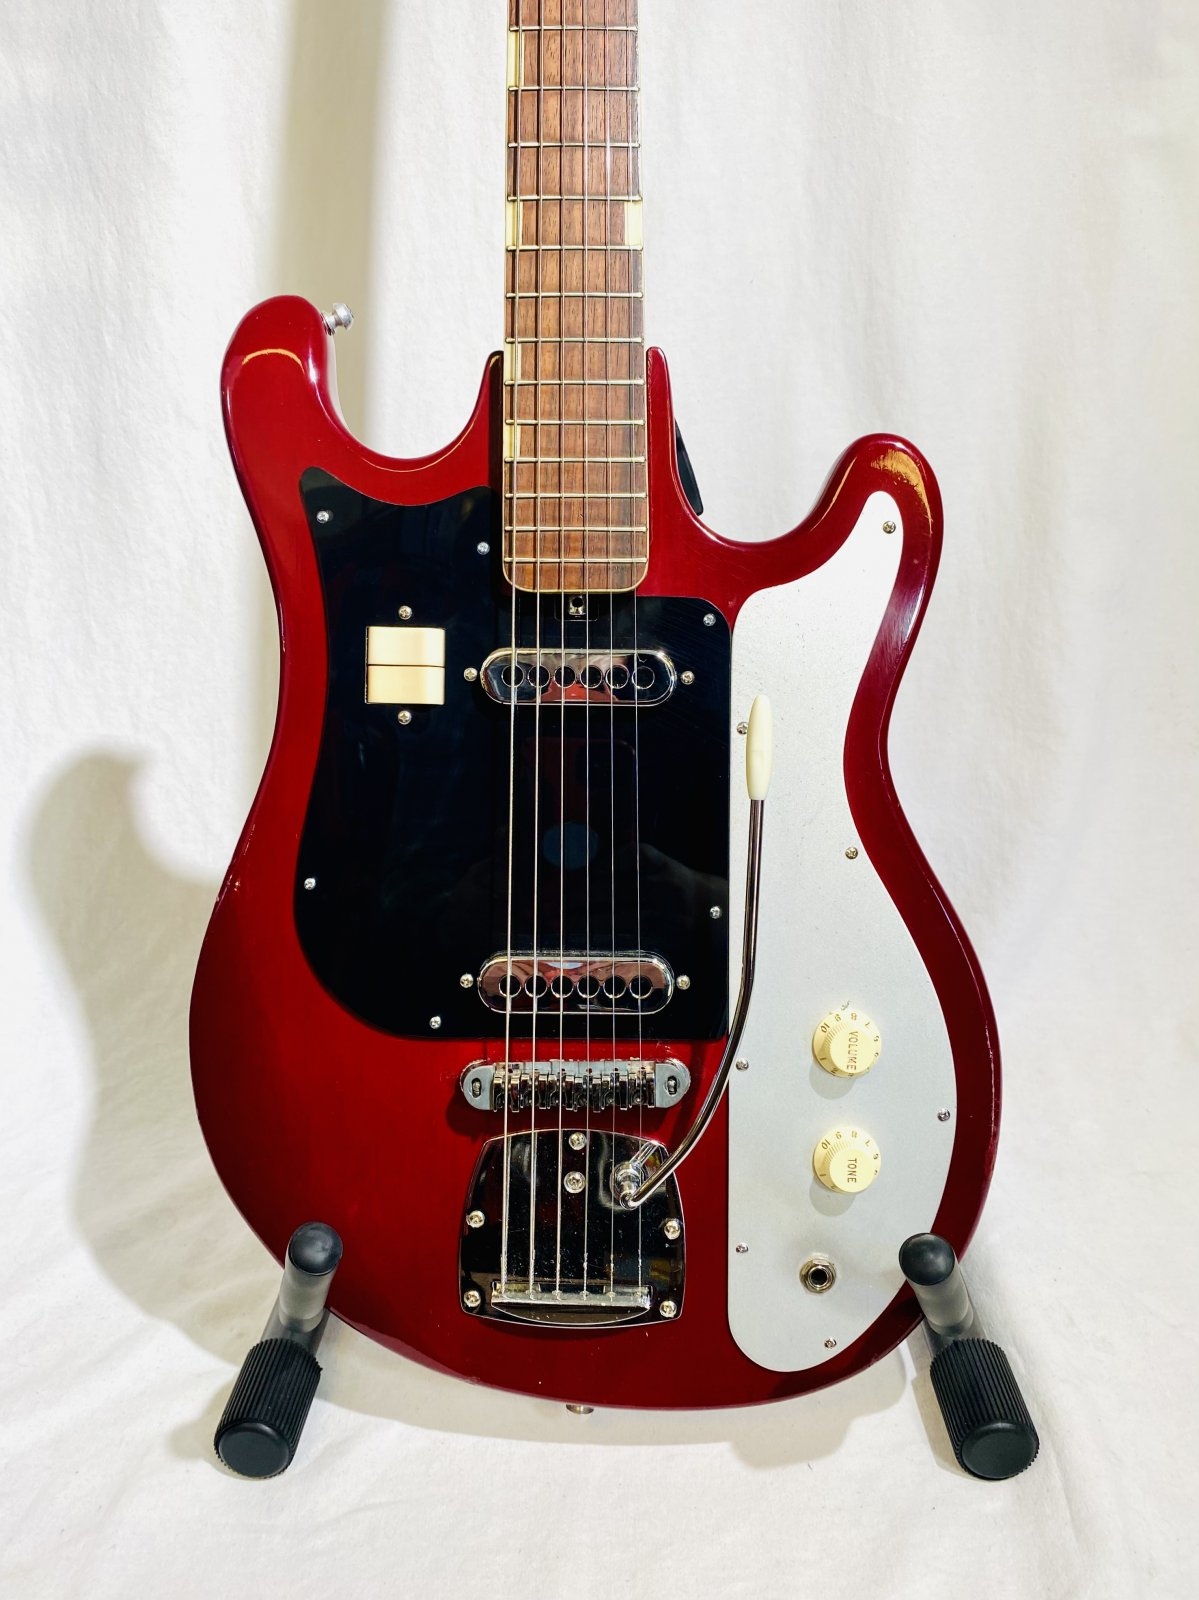 TEISCO WG2L 60'S MADE IN JAPAN ELECTRIC GUITAR W/ PLAYERS UPGRADES, BURGUNDY